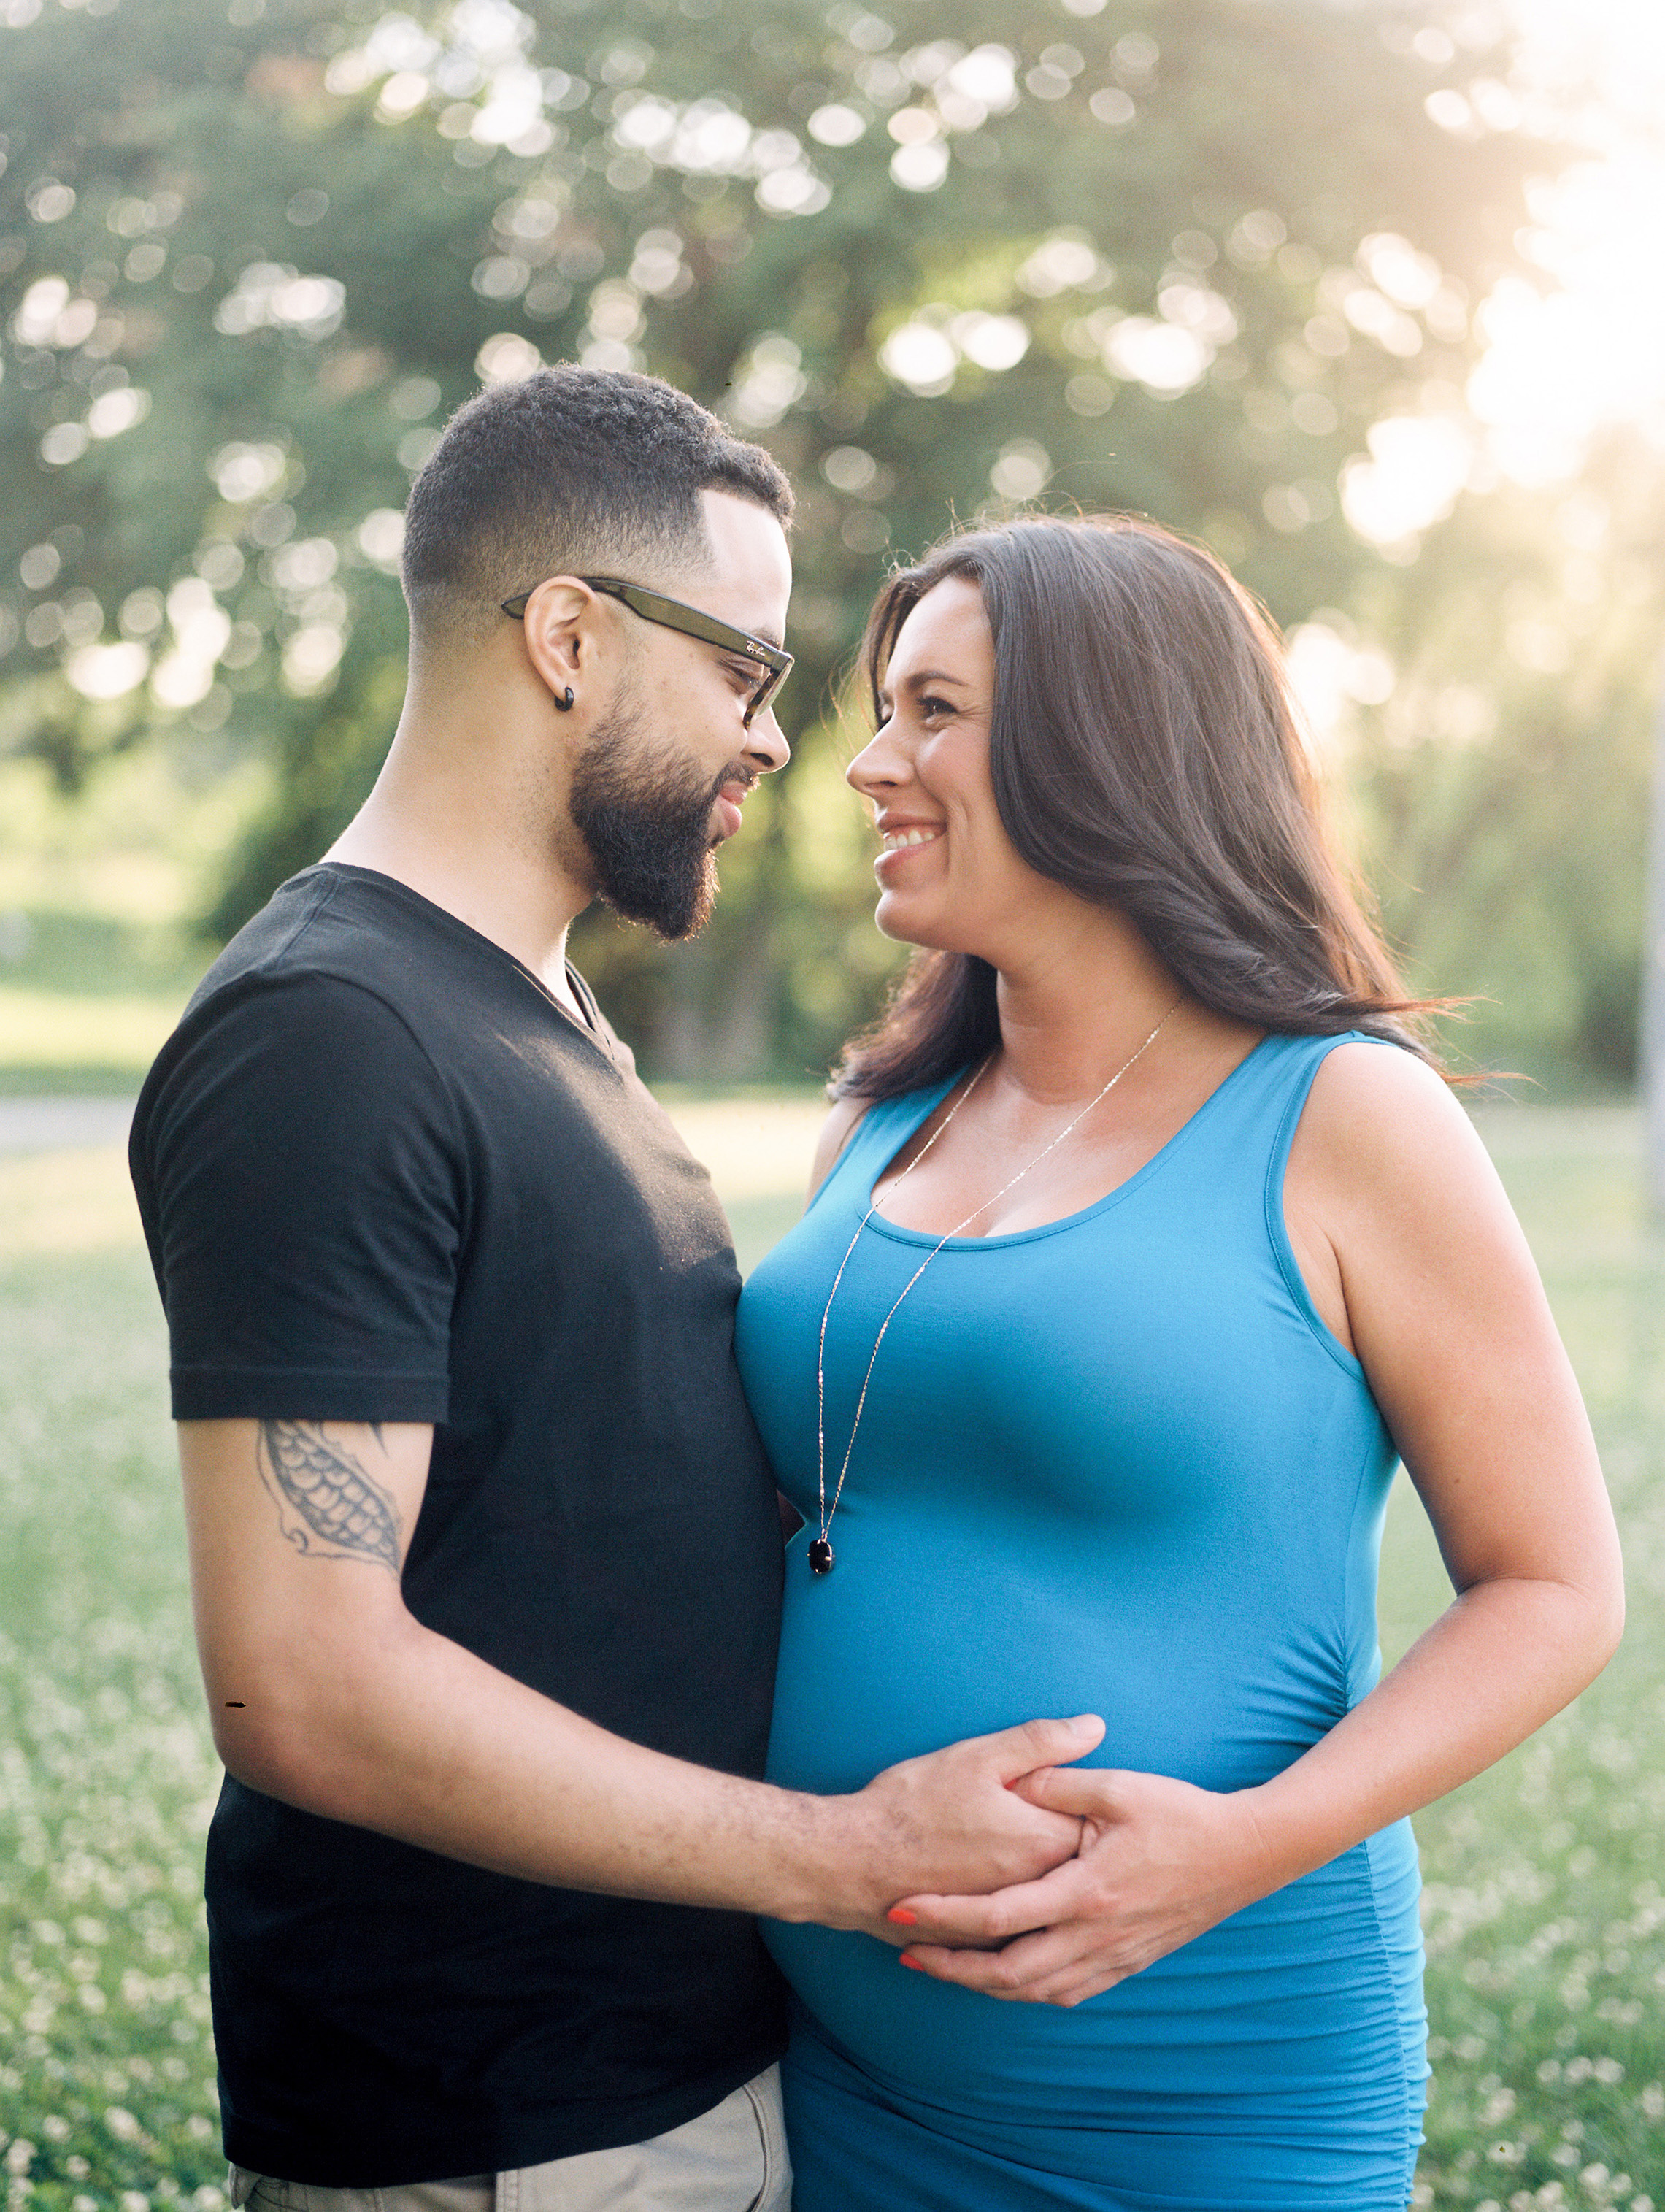 Amanda & Tyler Family - Outdoor Maternity Portraits